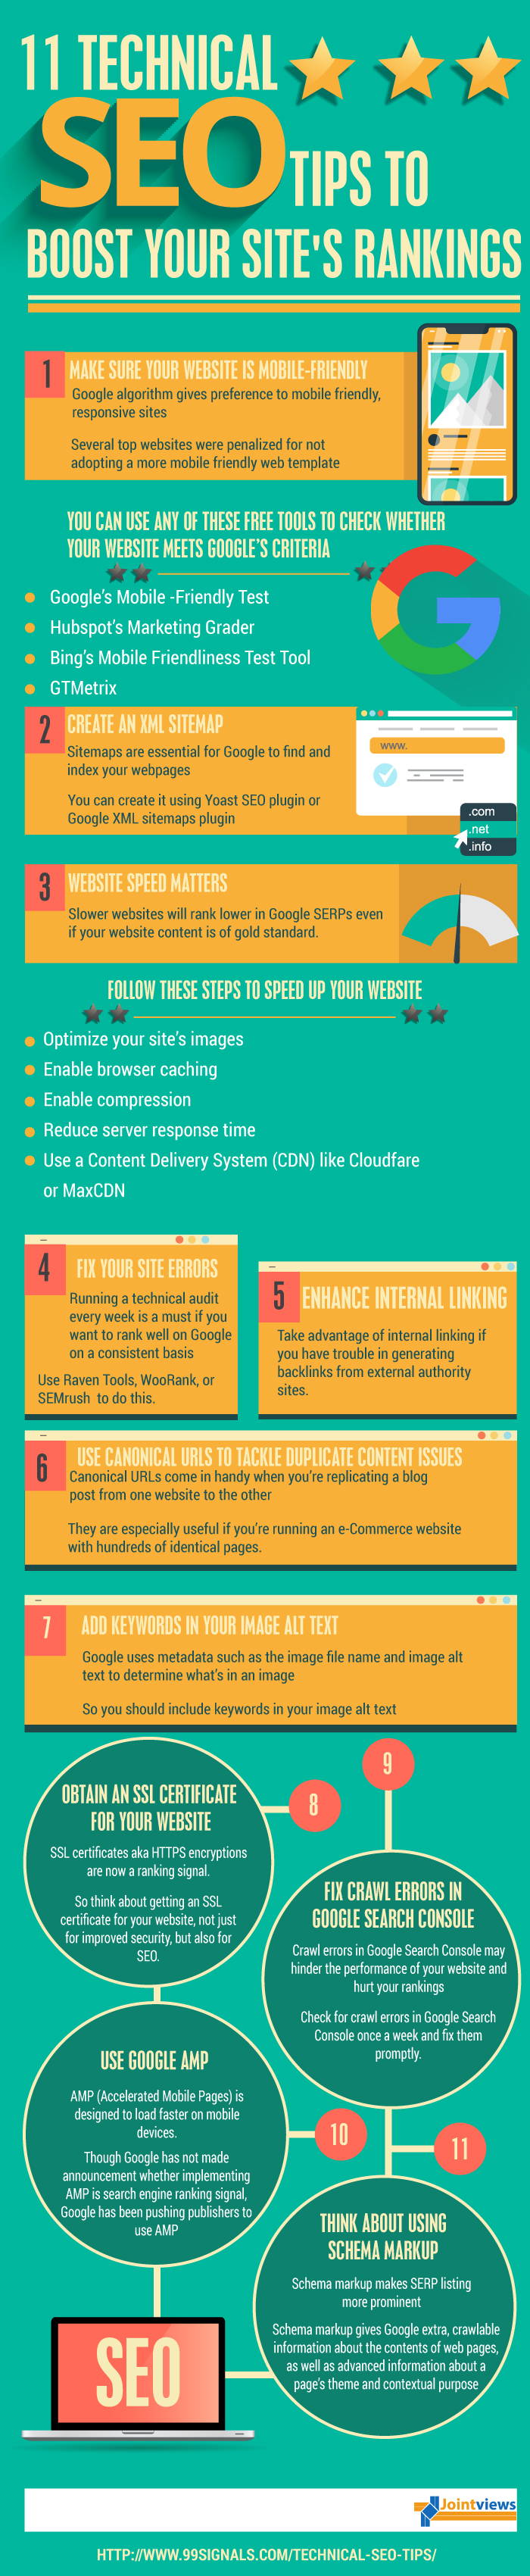 Technical SEO: 11 Ways to Boost Rankings - Infographic